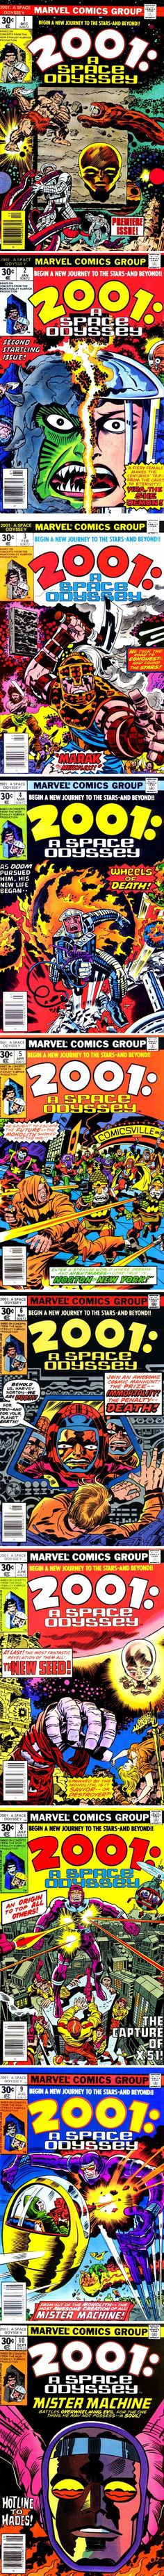 Jack Kirby's ten-issue 2001: A Space Odyssey series ran from December 1976 to September 1977.